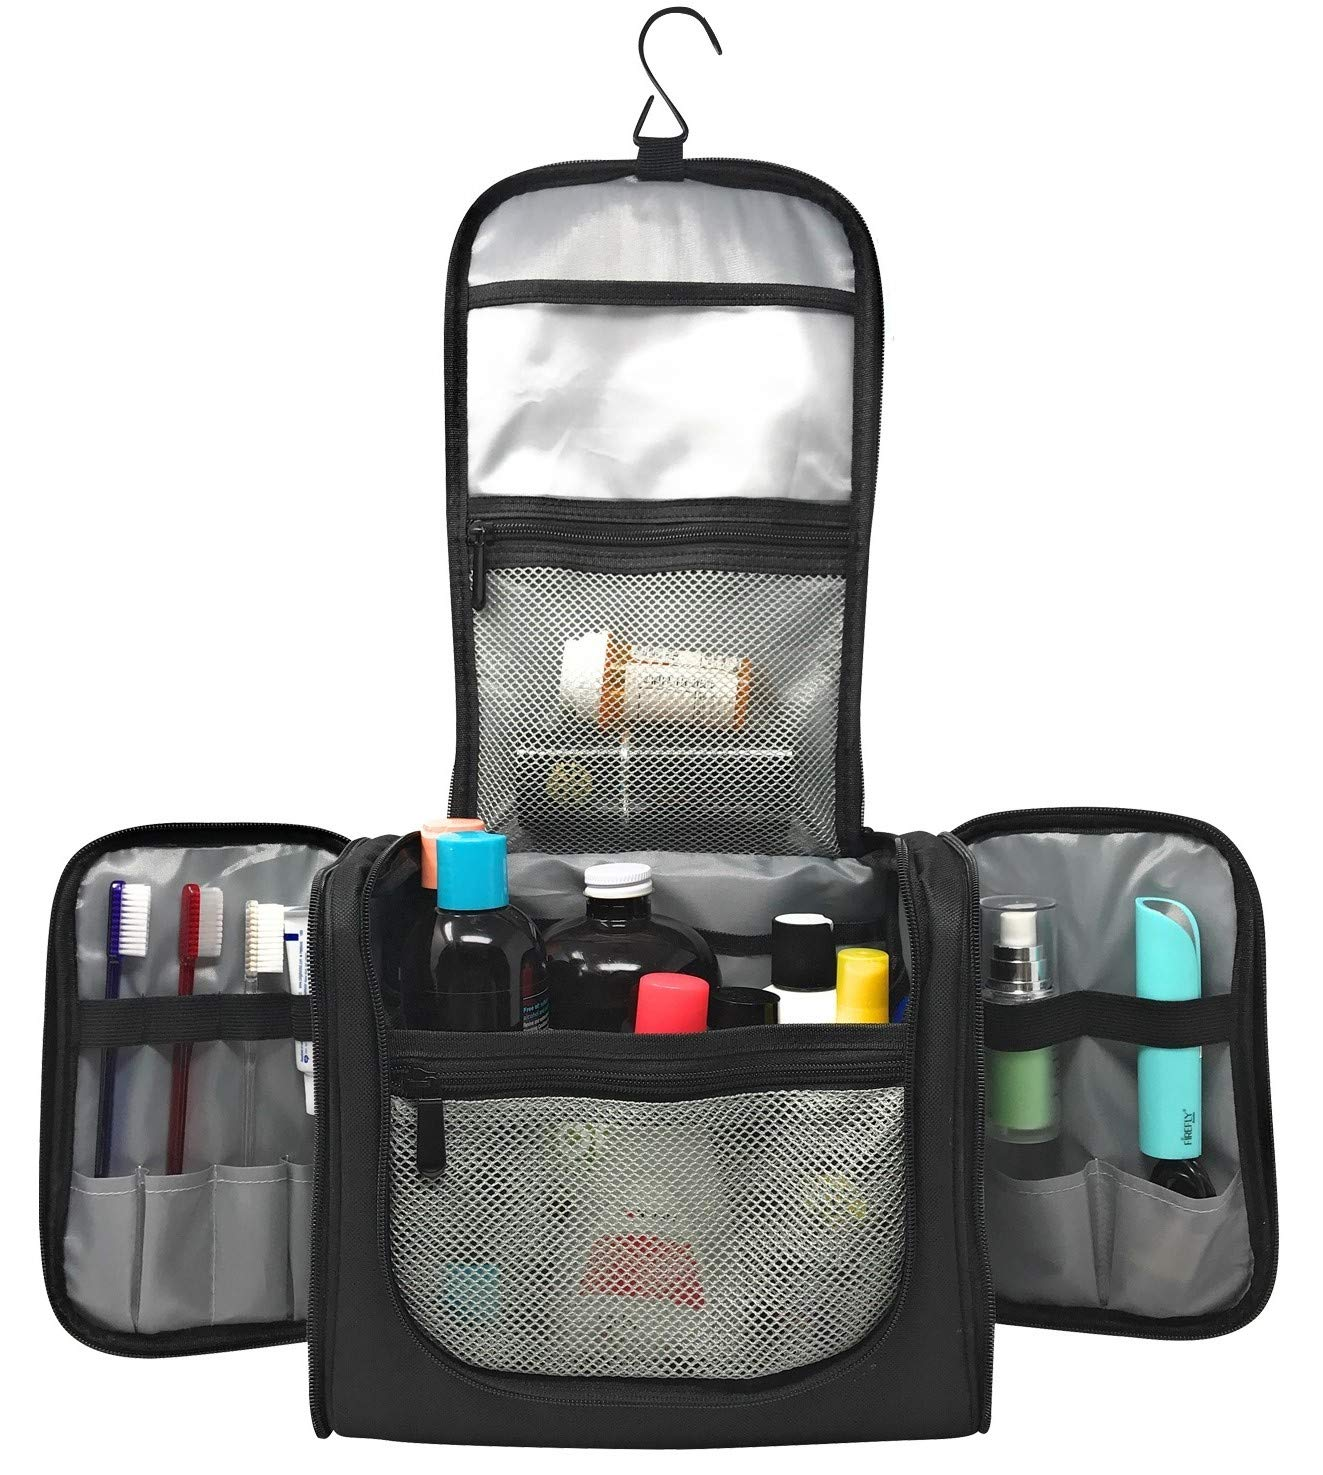 Extra Large Capacity Hanging Toiletry Bag Water Resistant Machine Washable | Organizer for Men & Women Spacious Compact Kit | Strong Zippers, Sturdy Hook | Handle | 17 Compartments | Travel and Home